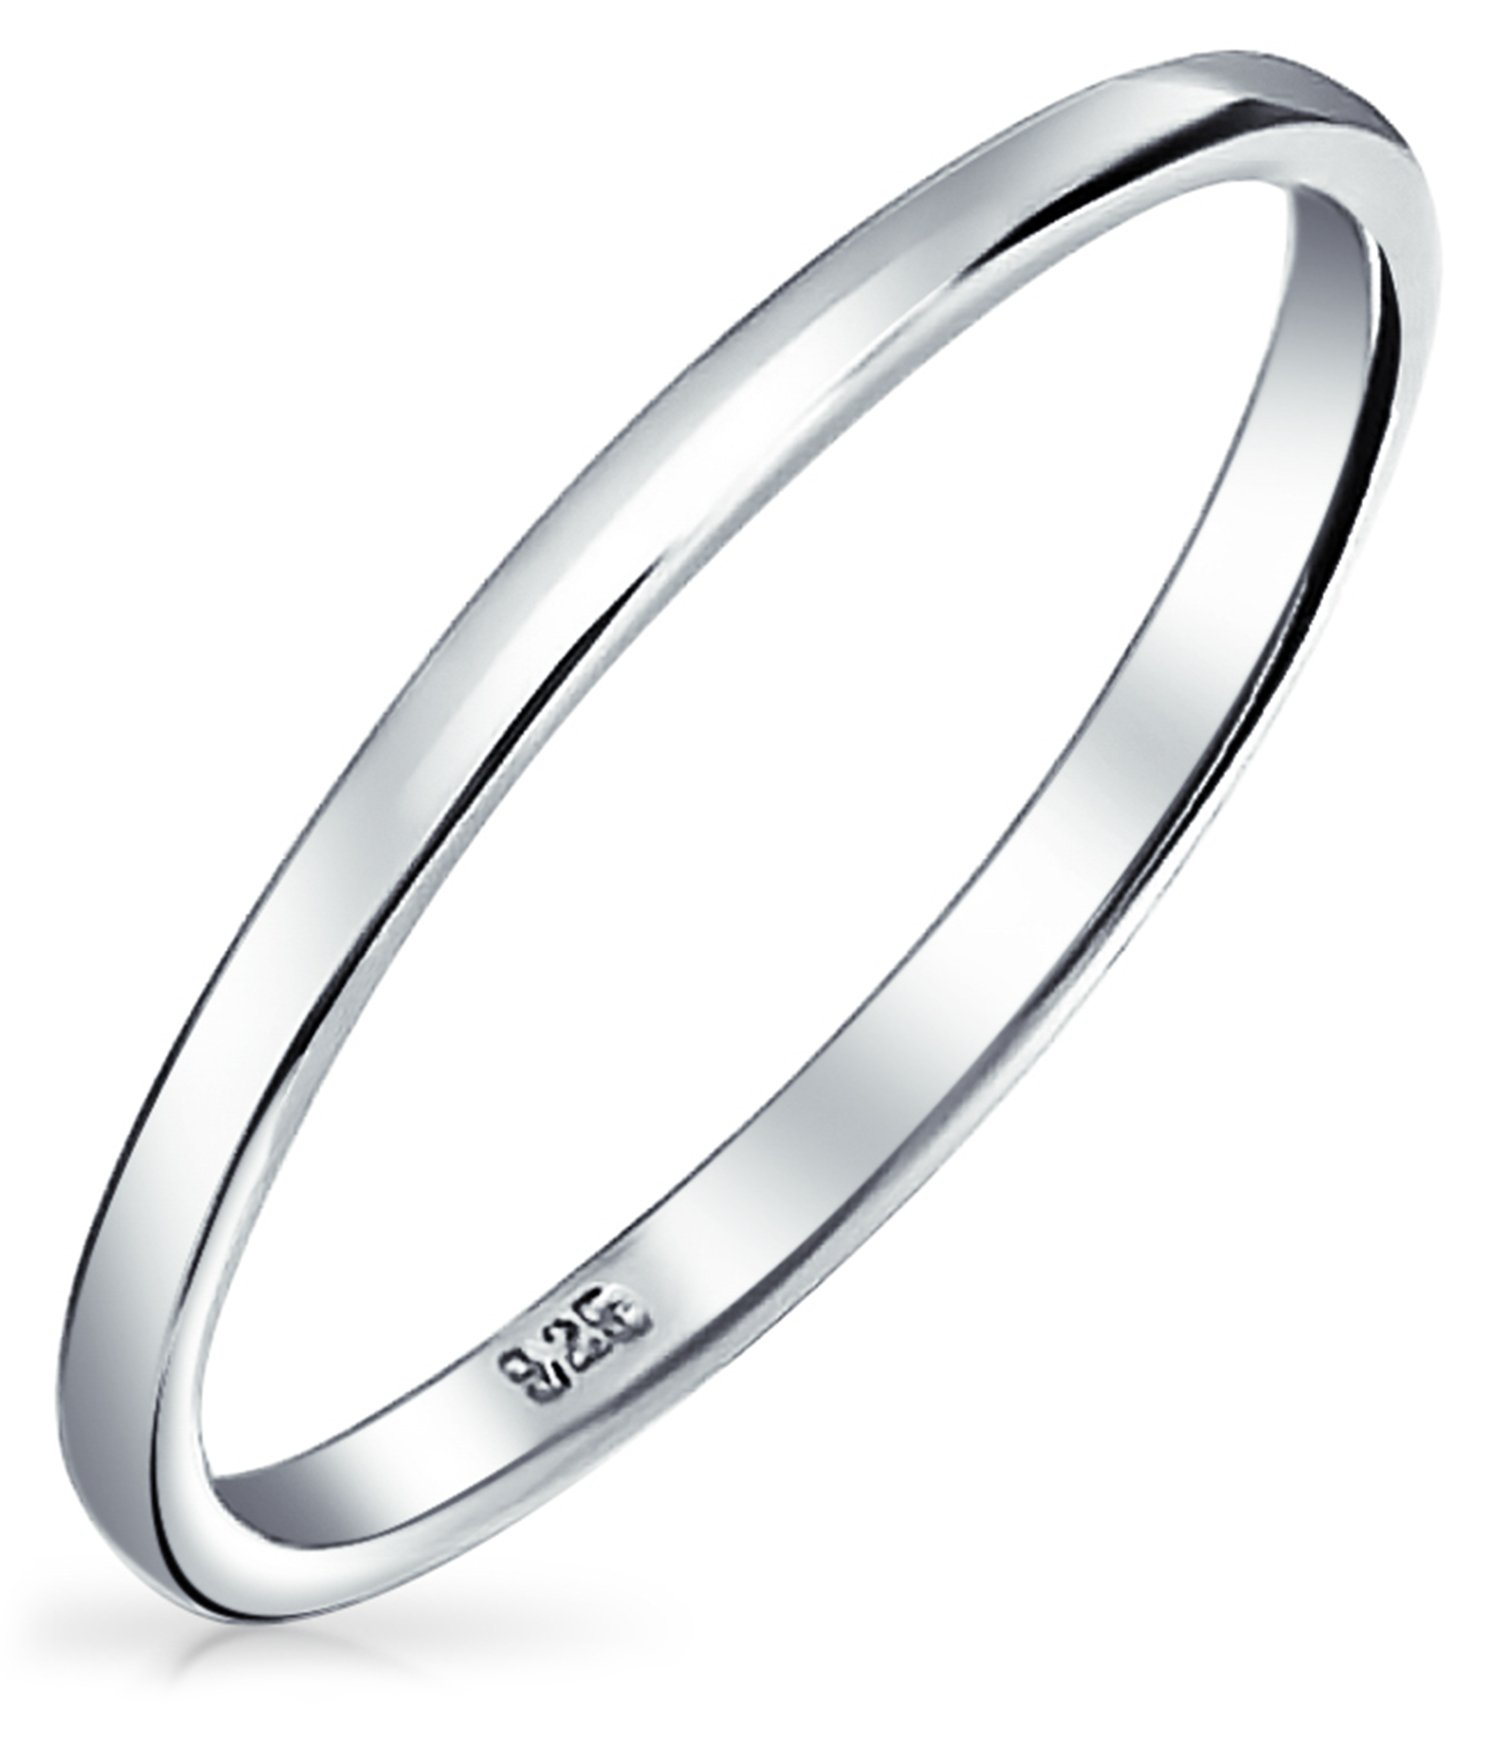 Bling Jewelry .925 Sterling Silver Wedding Band Thumb Toe Ring 2mm,Grey,11